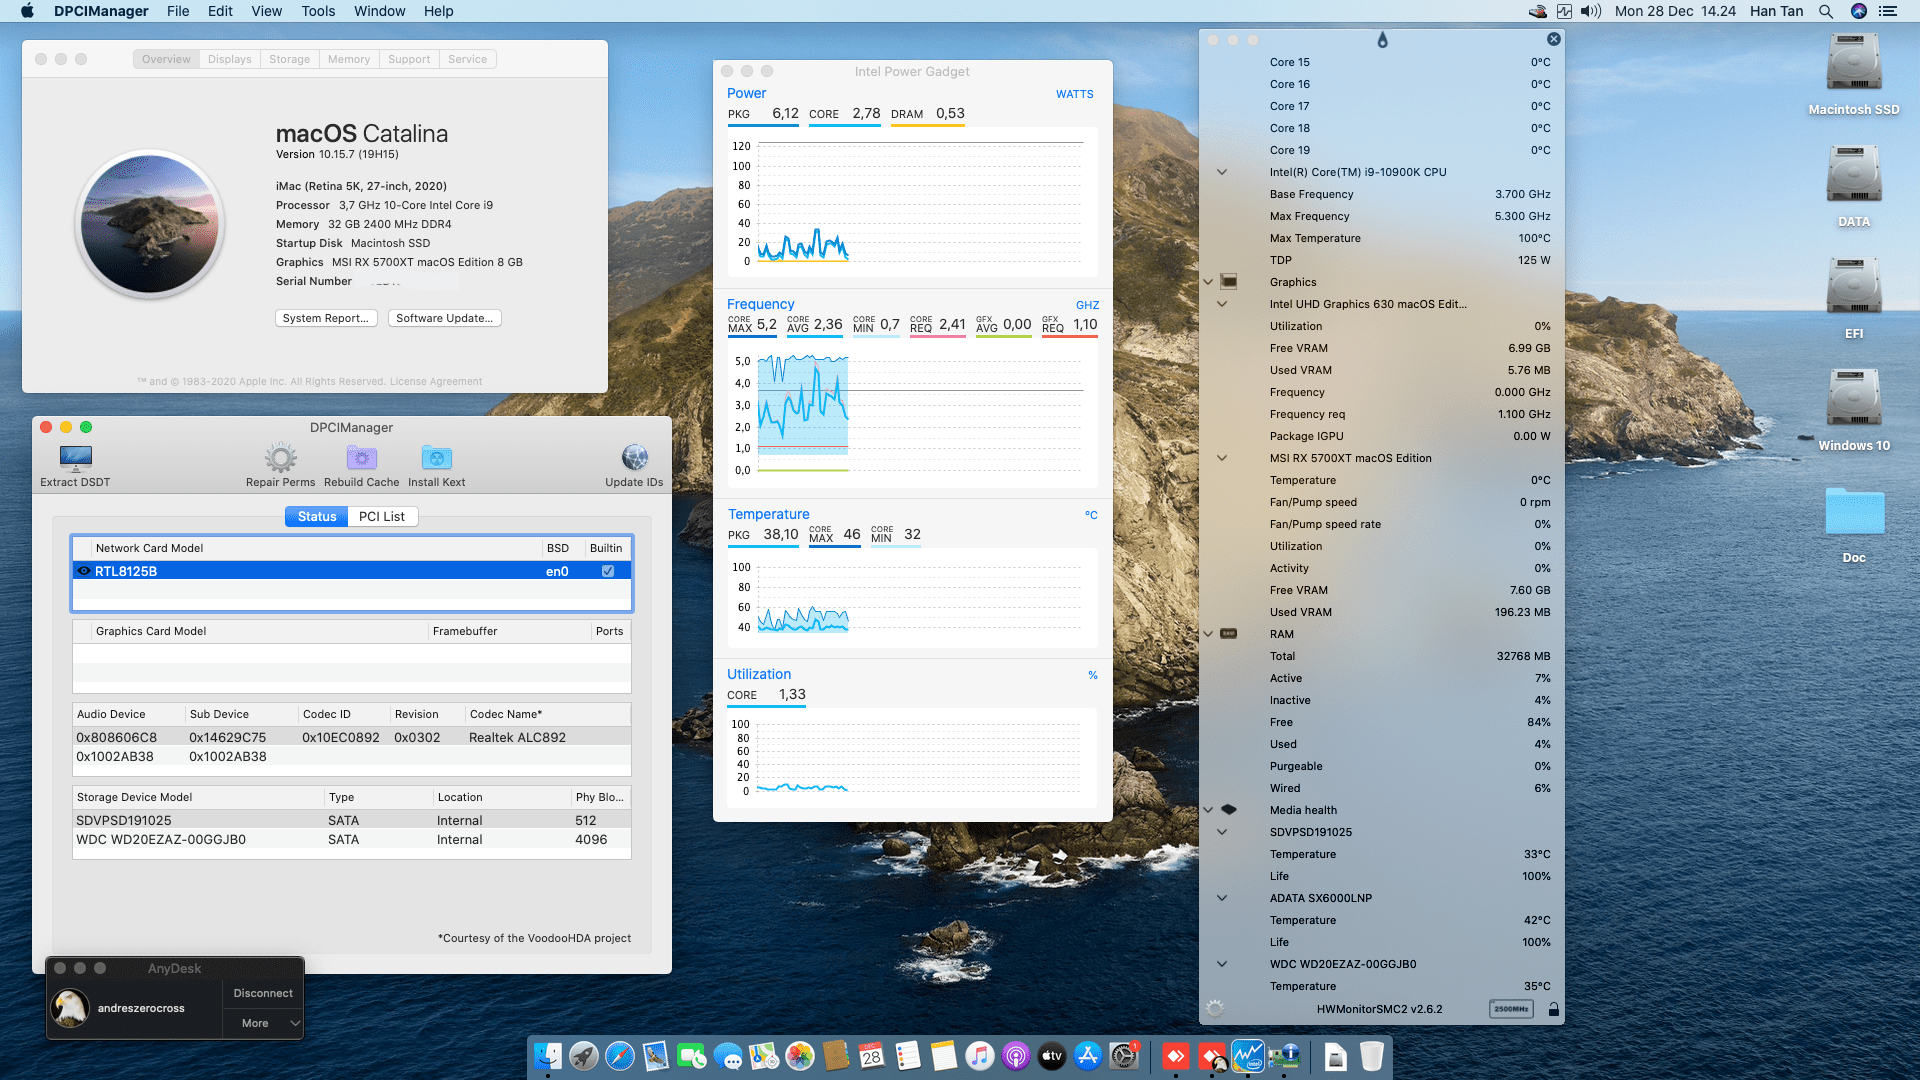 Success Hackintosh macOS Catalina 10.15.7 Build 19H15 in MSI Z490-A Pro + Intel Core i9-10900K + MSI RX 5700XT